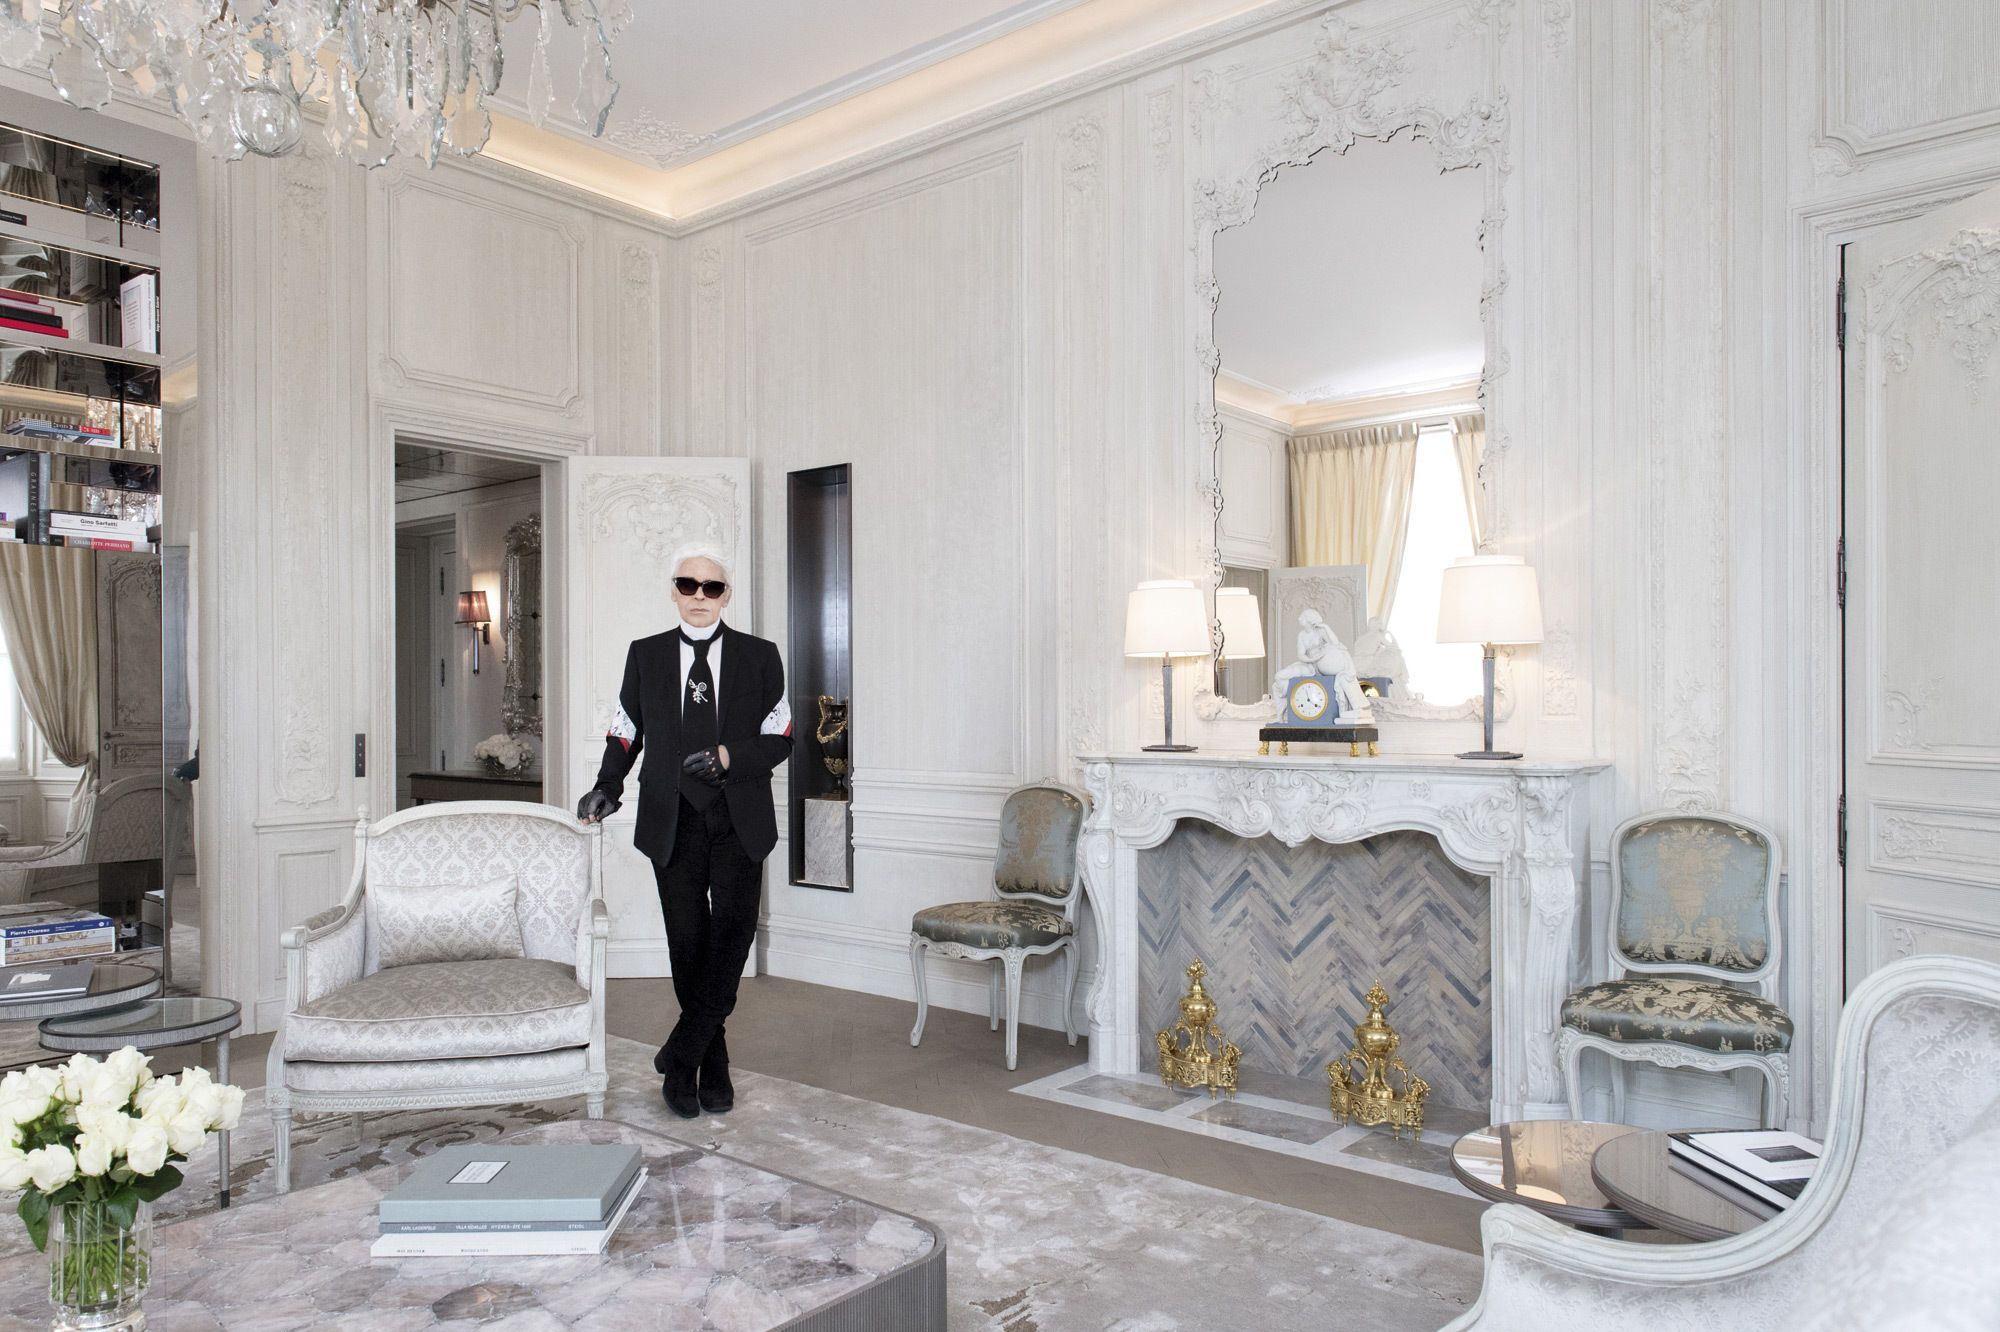 Hôtel de Crillon: Inside The Parisian Hotel's US$300 Million Renovation